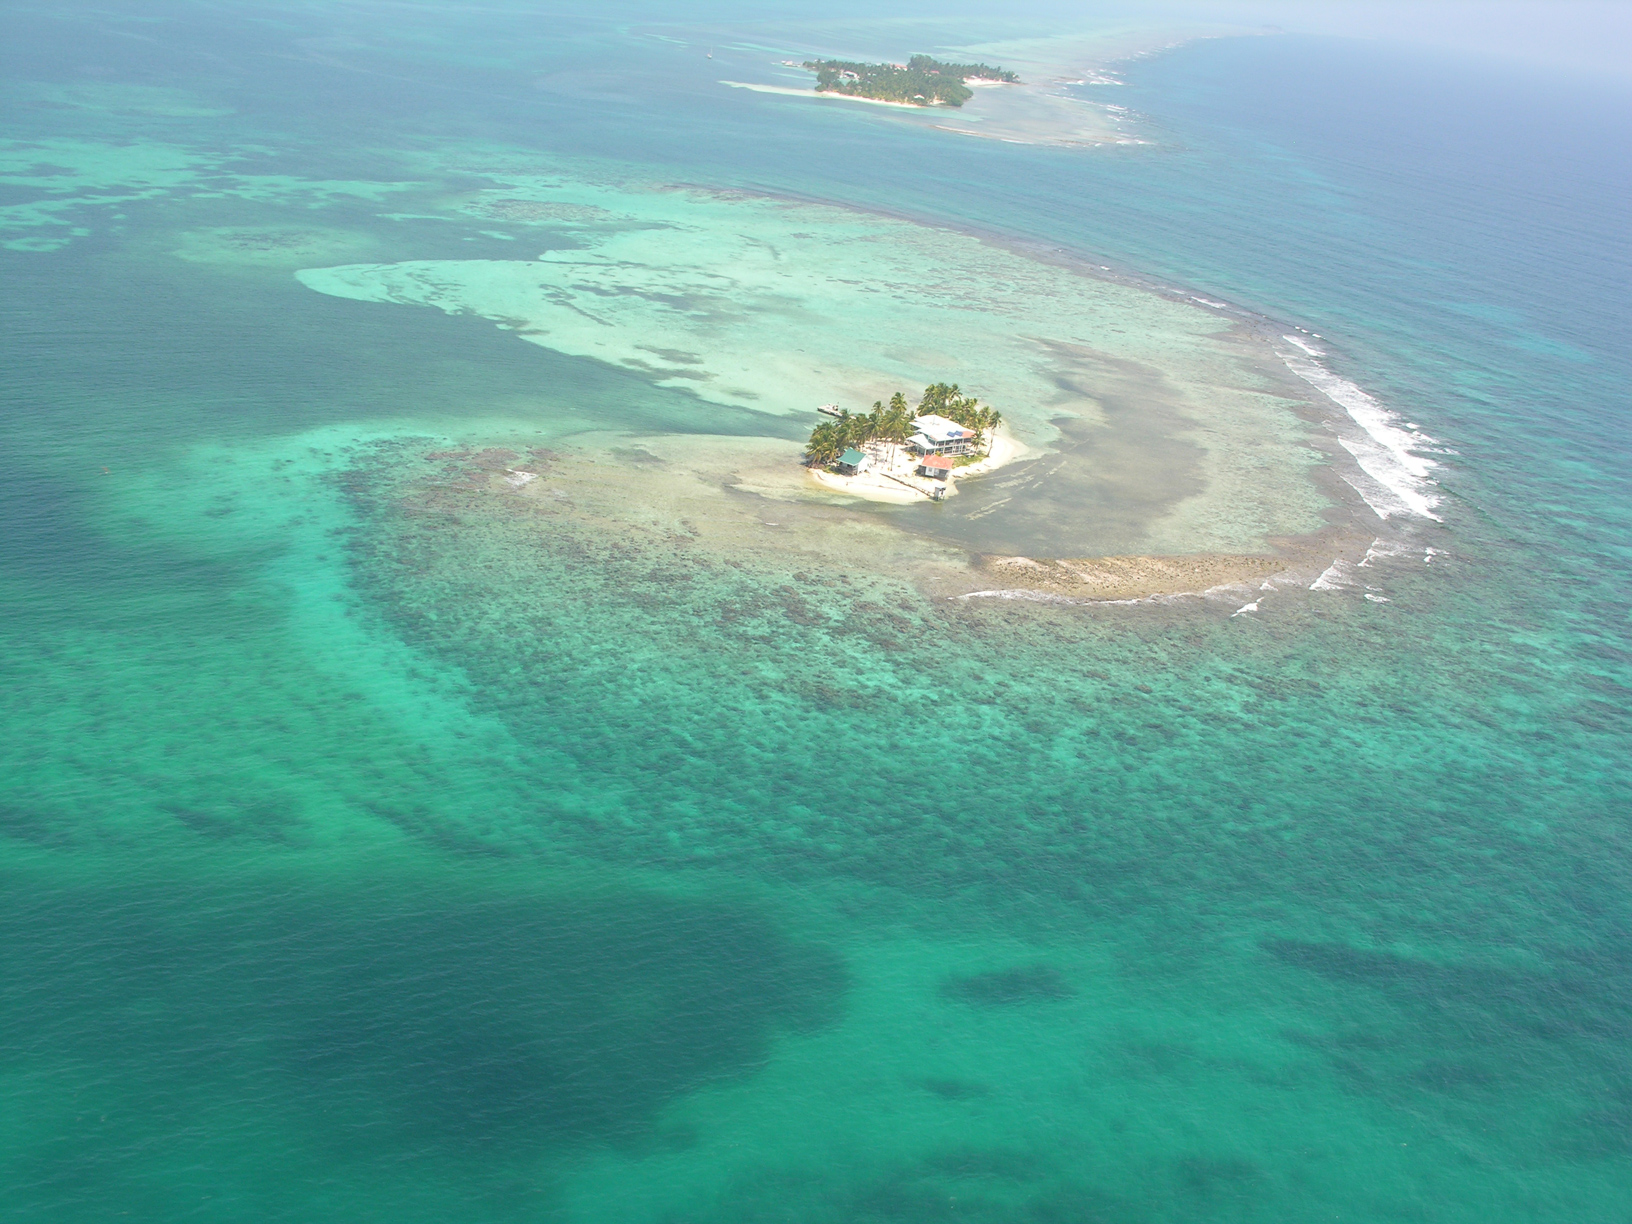 An aerial photo of Carrie Bow Cay and the Smithsonian research station looking north. <div class='credit'><strong>Credit:</strong> An aerial photo of Carrie Bow Cay and the Smithsonian research station looking north. </div>